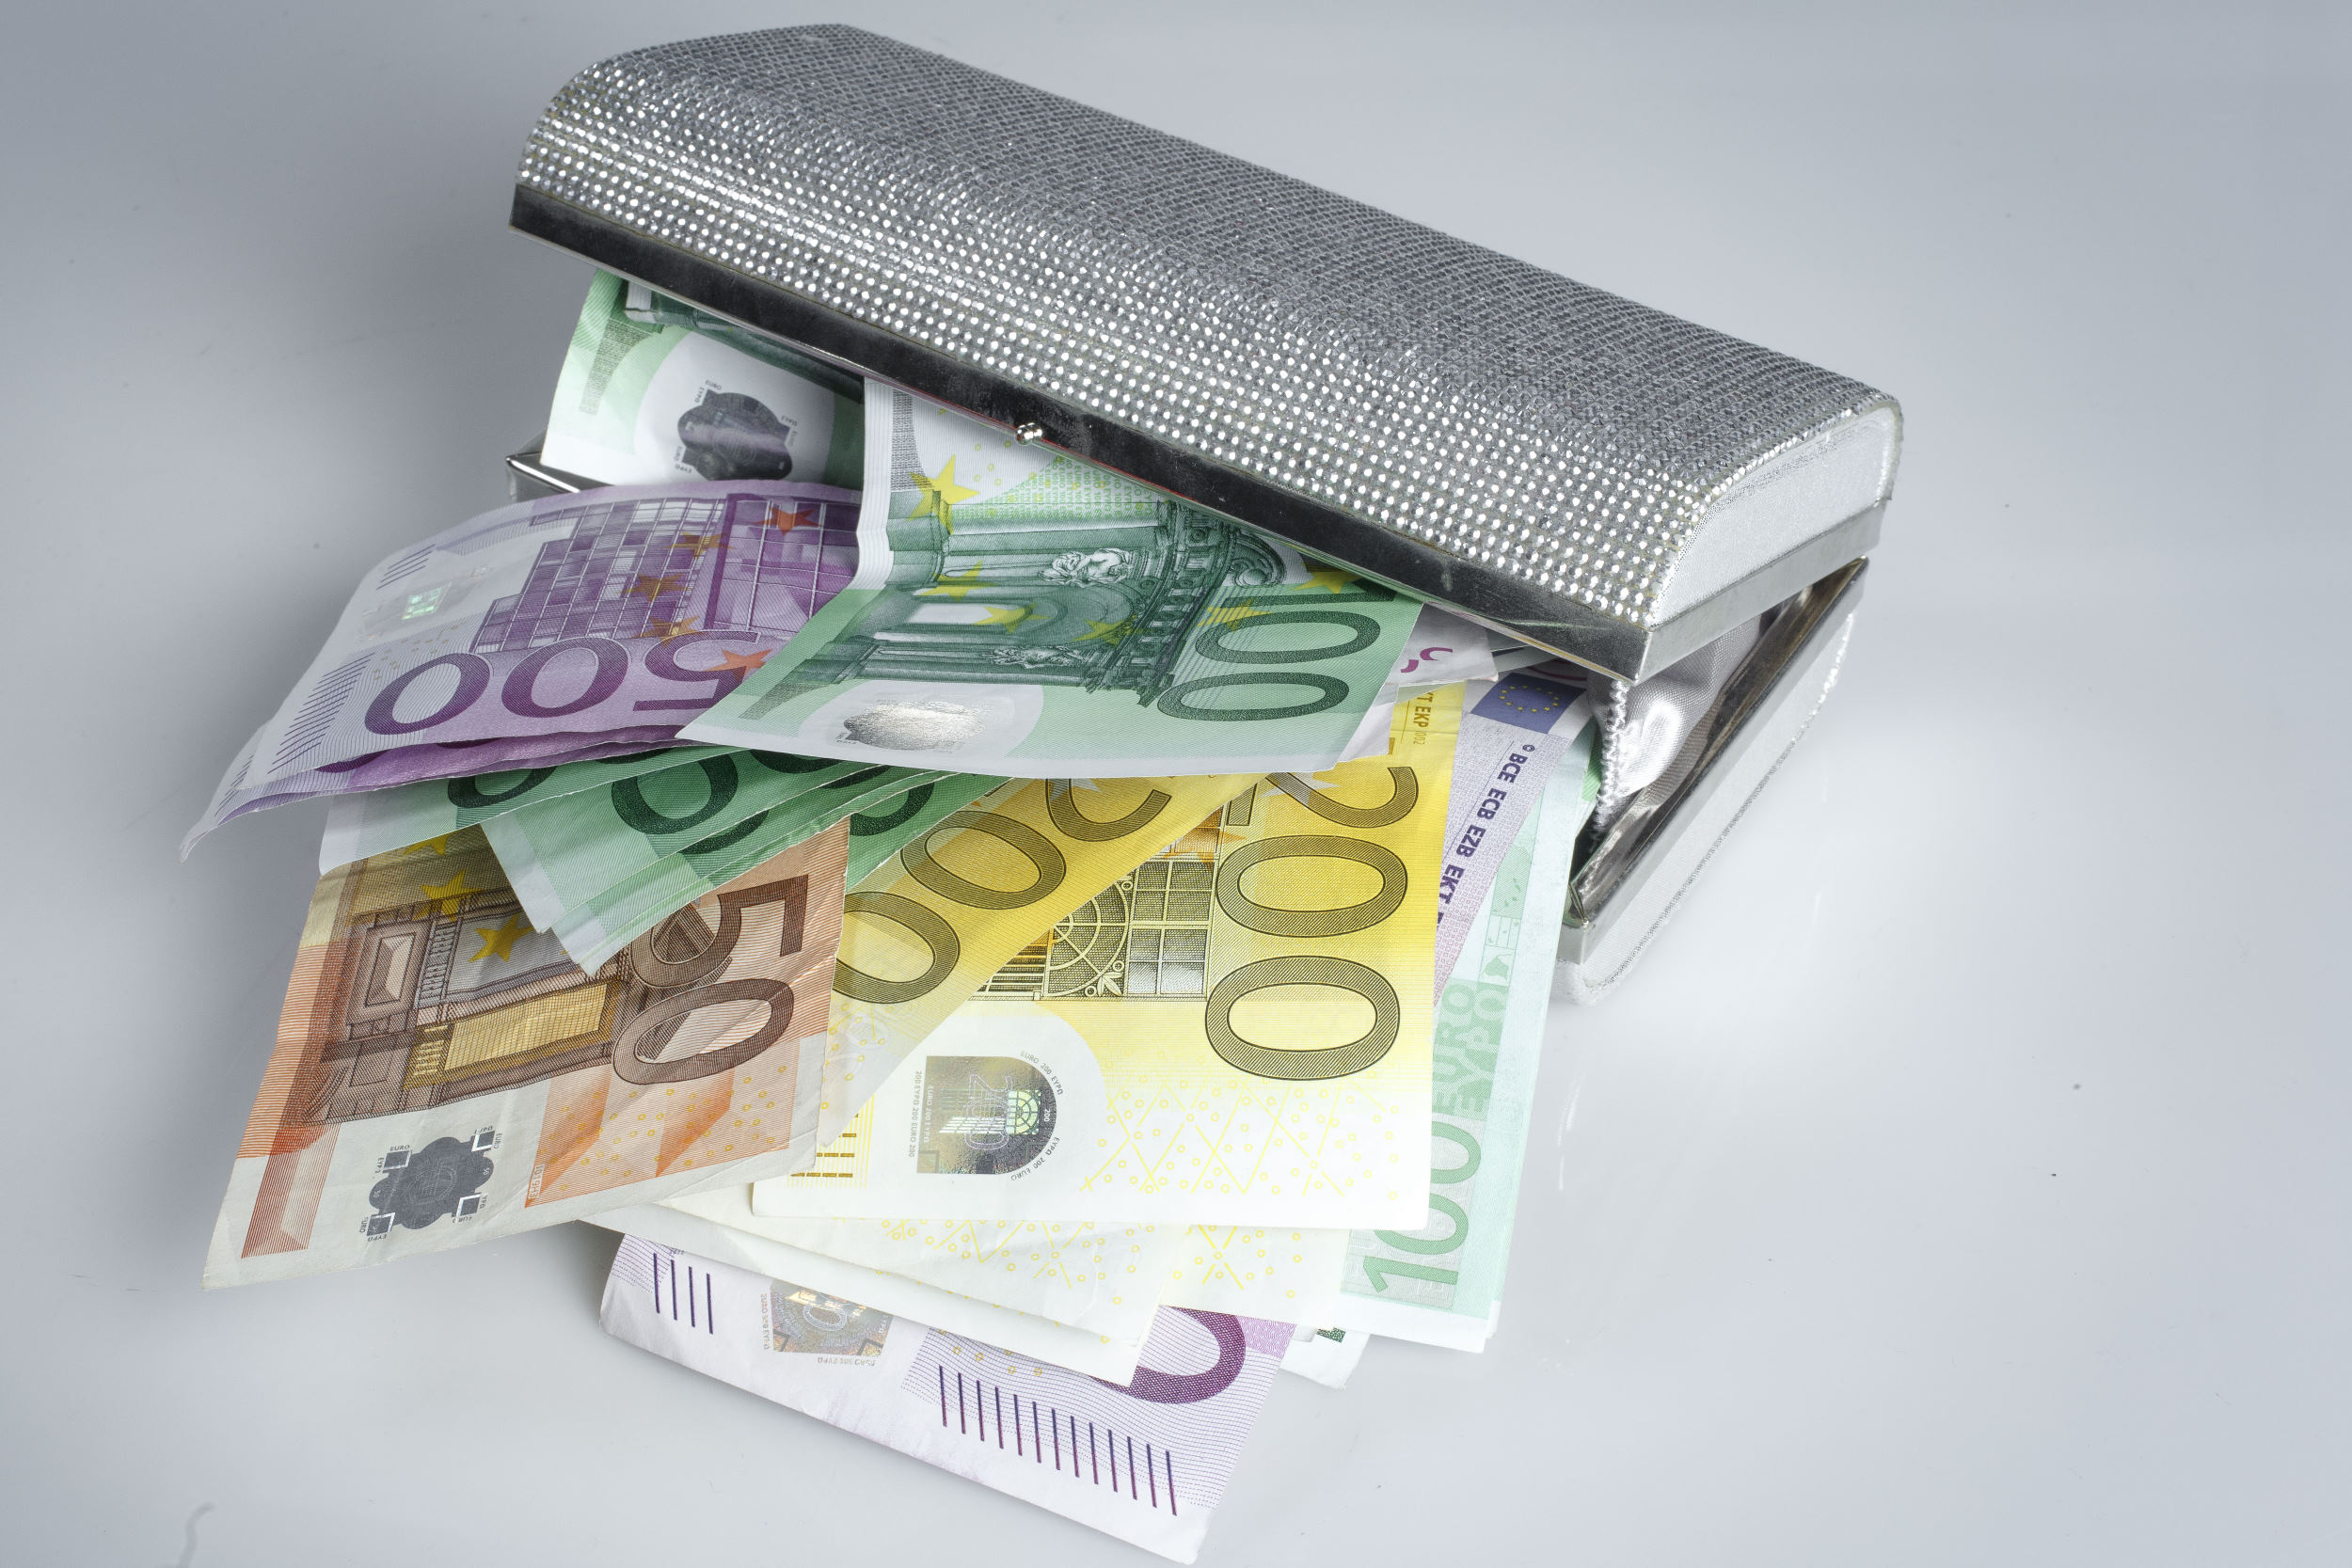 geld, money, euro, sparen, savings, pensioen, retirement, biljet, bills, briefgeld, papiergeld, contant, cash